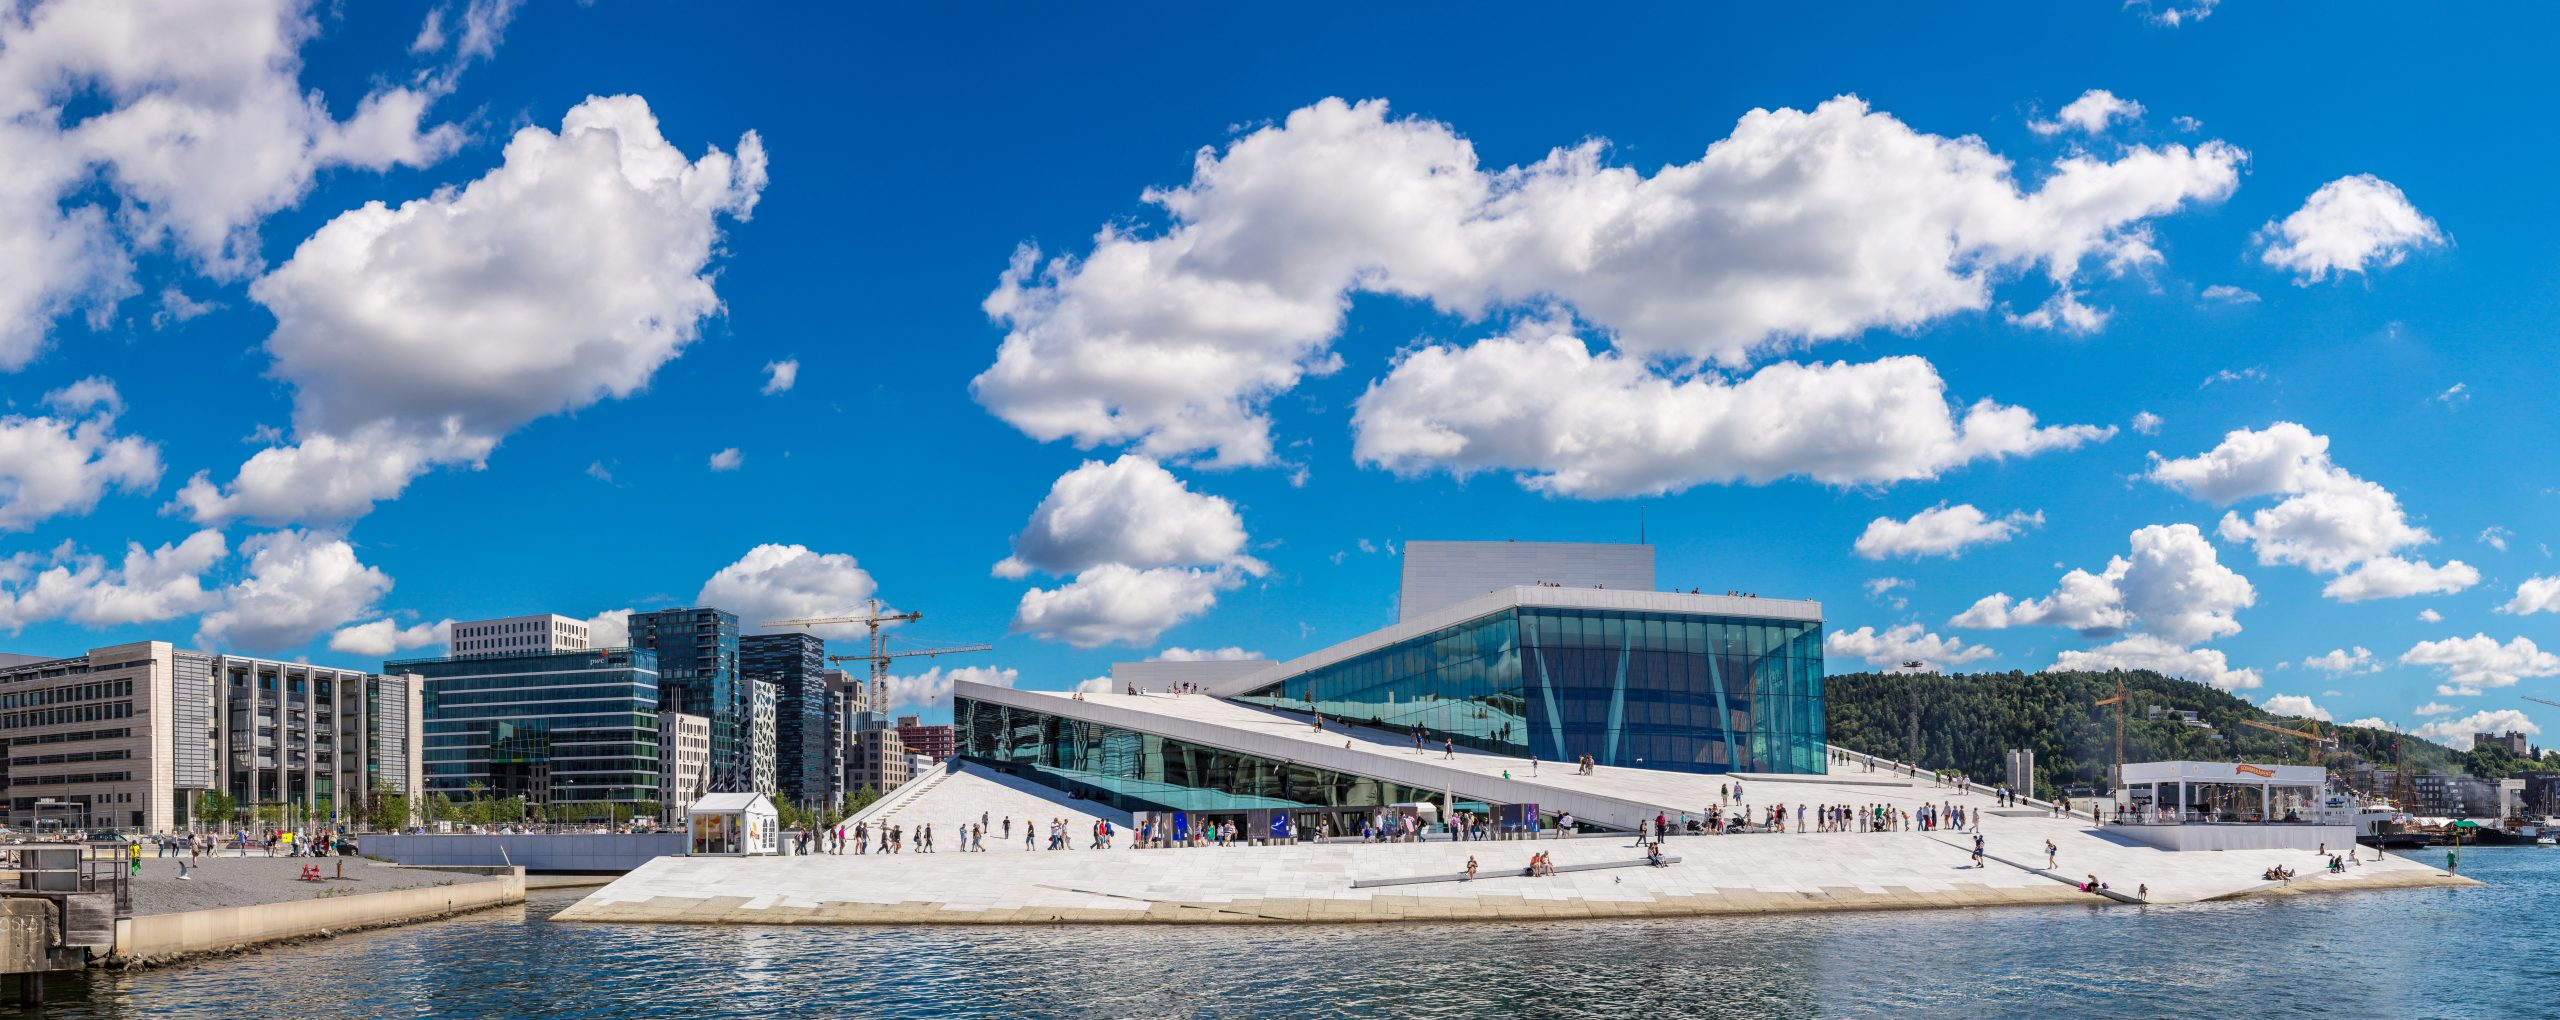 OSLO, NORWAY - JULY 29: The Oslo Opera House is the home of The Norwegian National Opera and Ballet, and the national opera theatre in Norway in Oslo, Norway on July 29, 2014